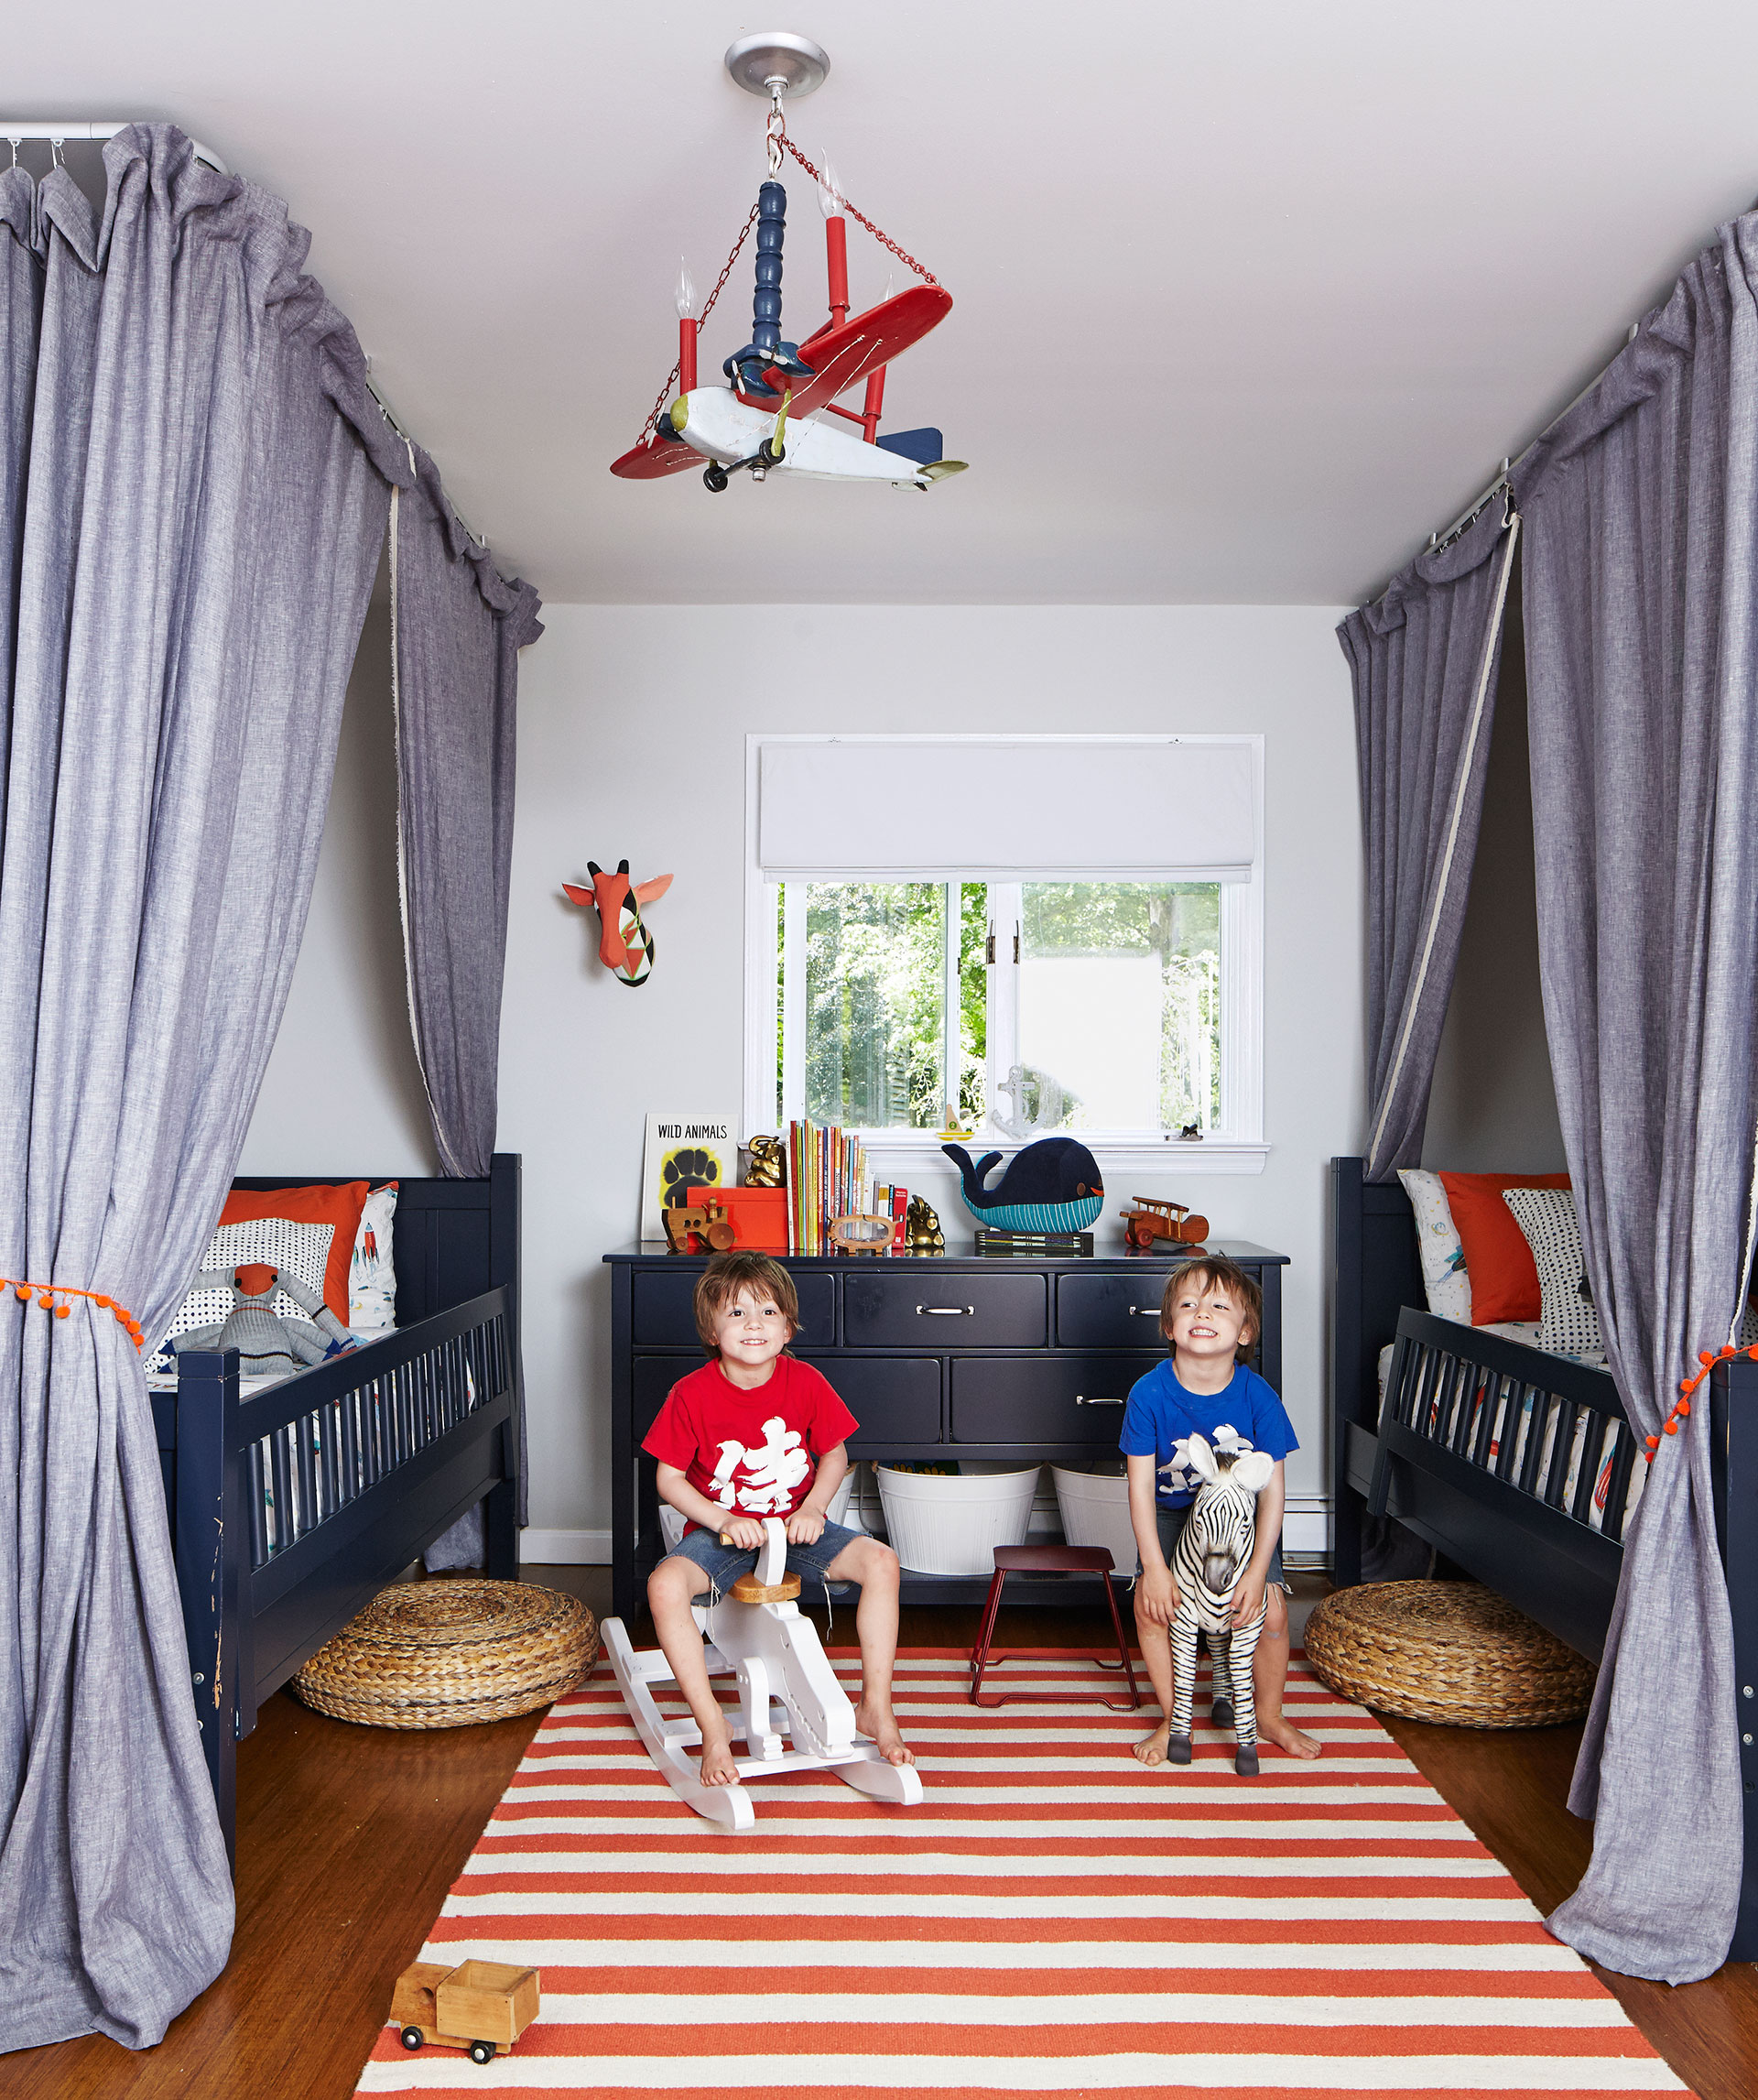 50 kids room decor ideas bedroom design and decorating for kids - Kids Bedroom Decoration Ideas